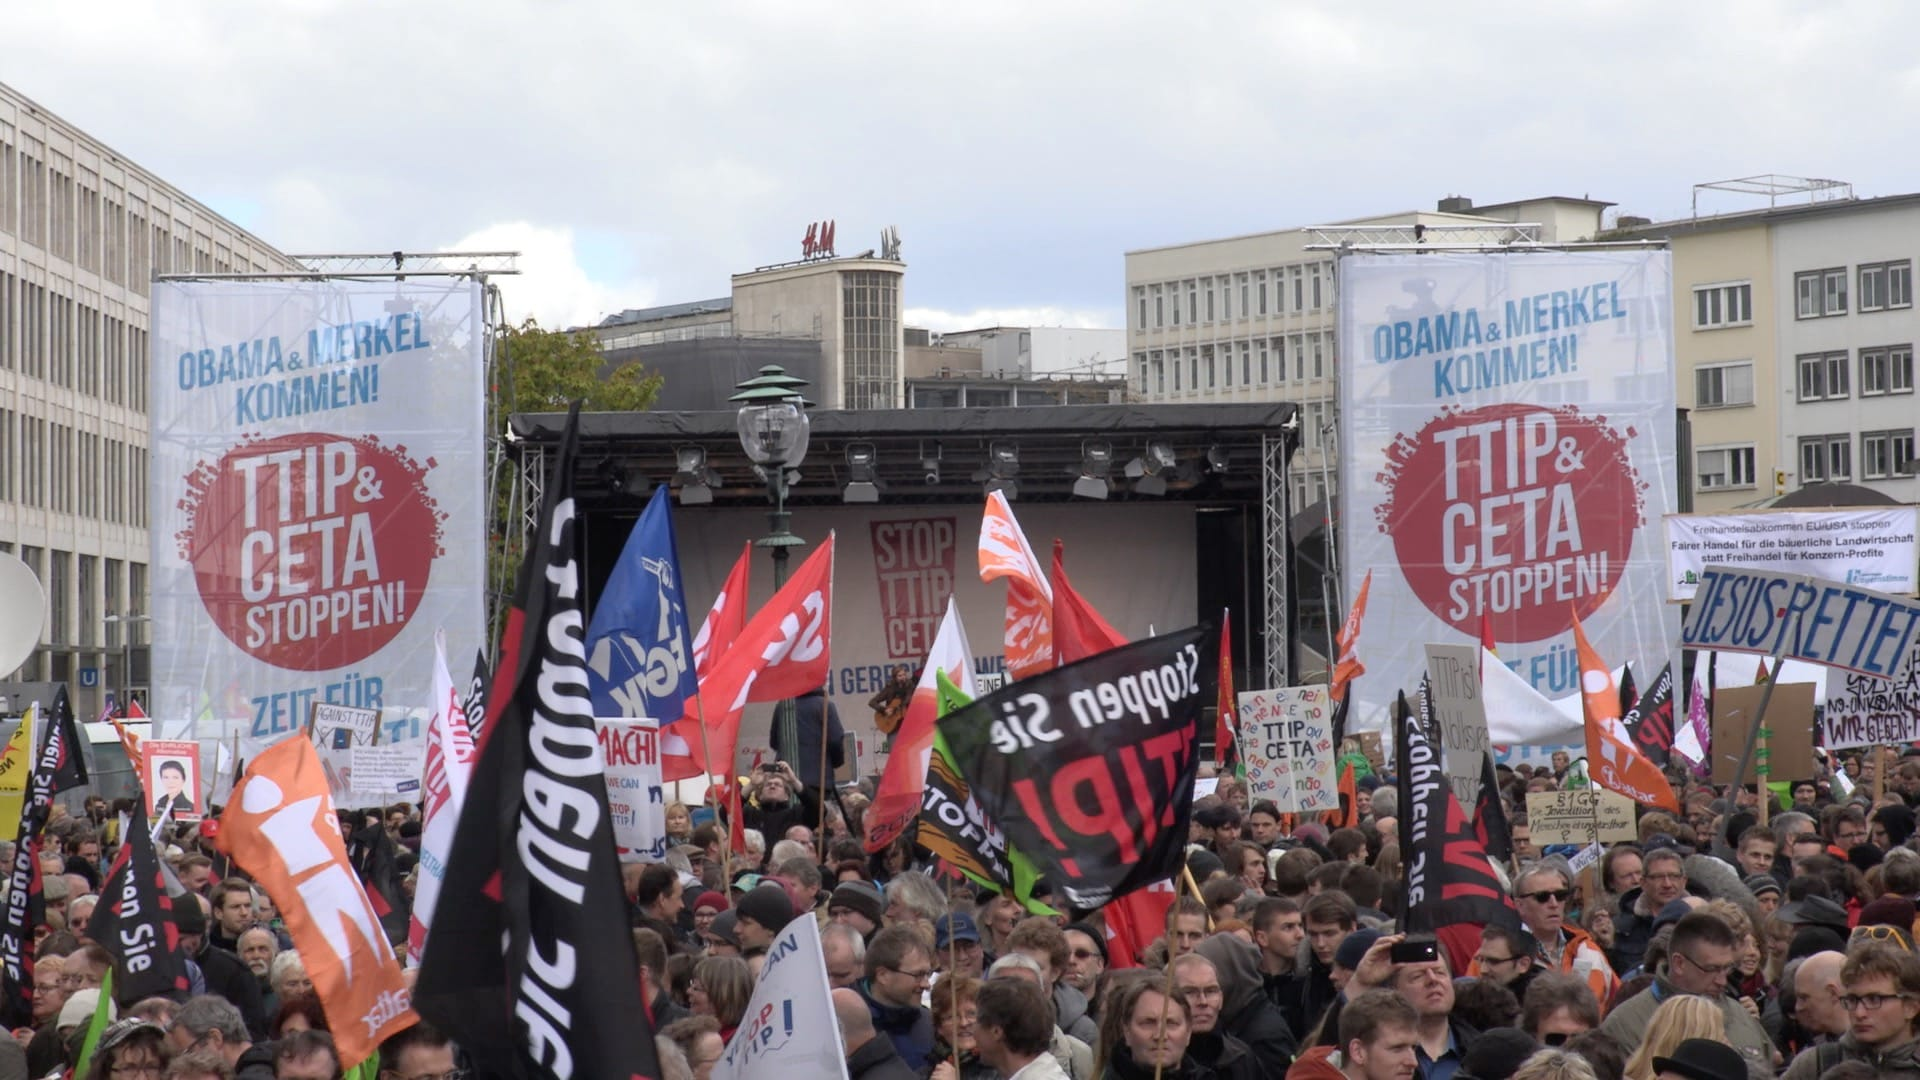 TTIP-CETA Demonstration in Hannover